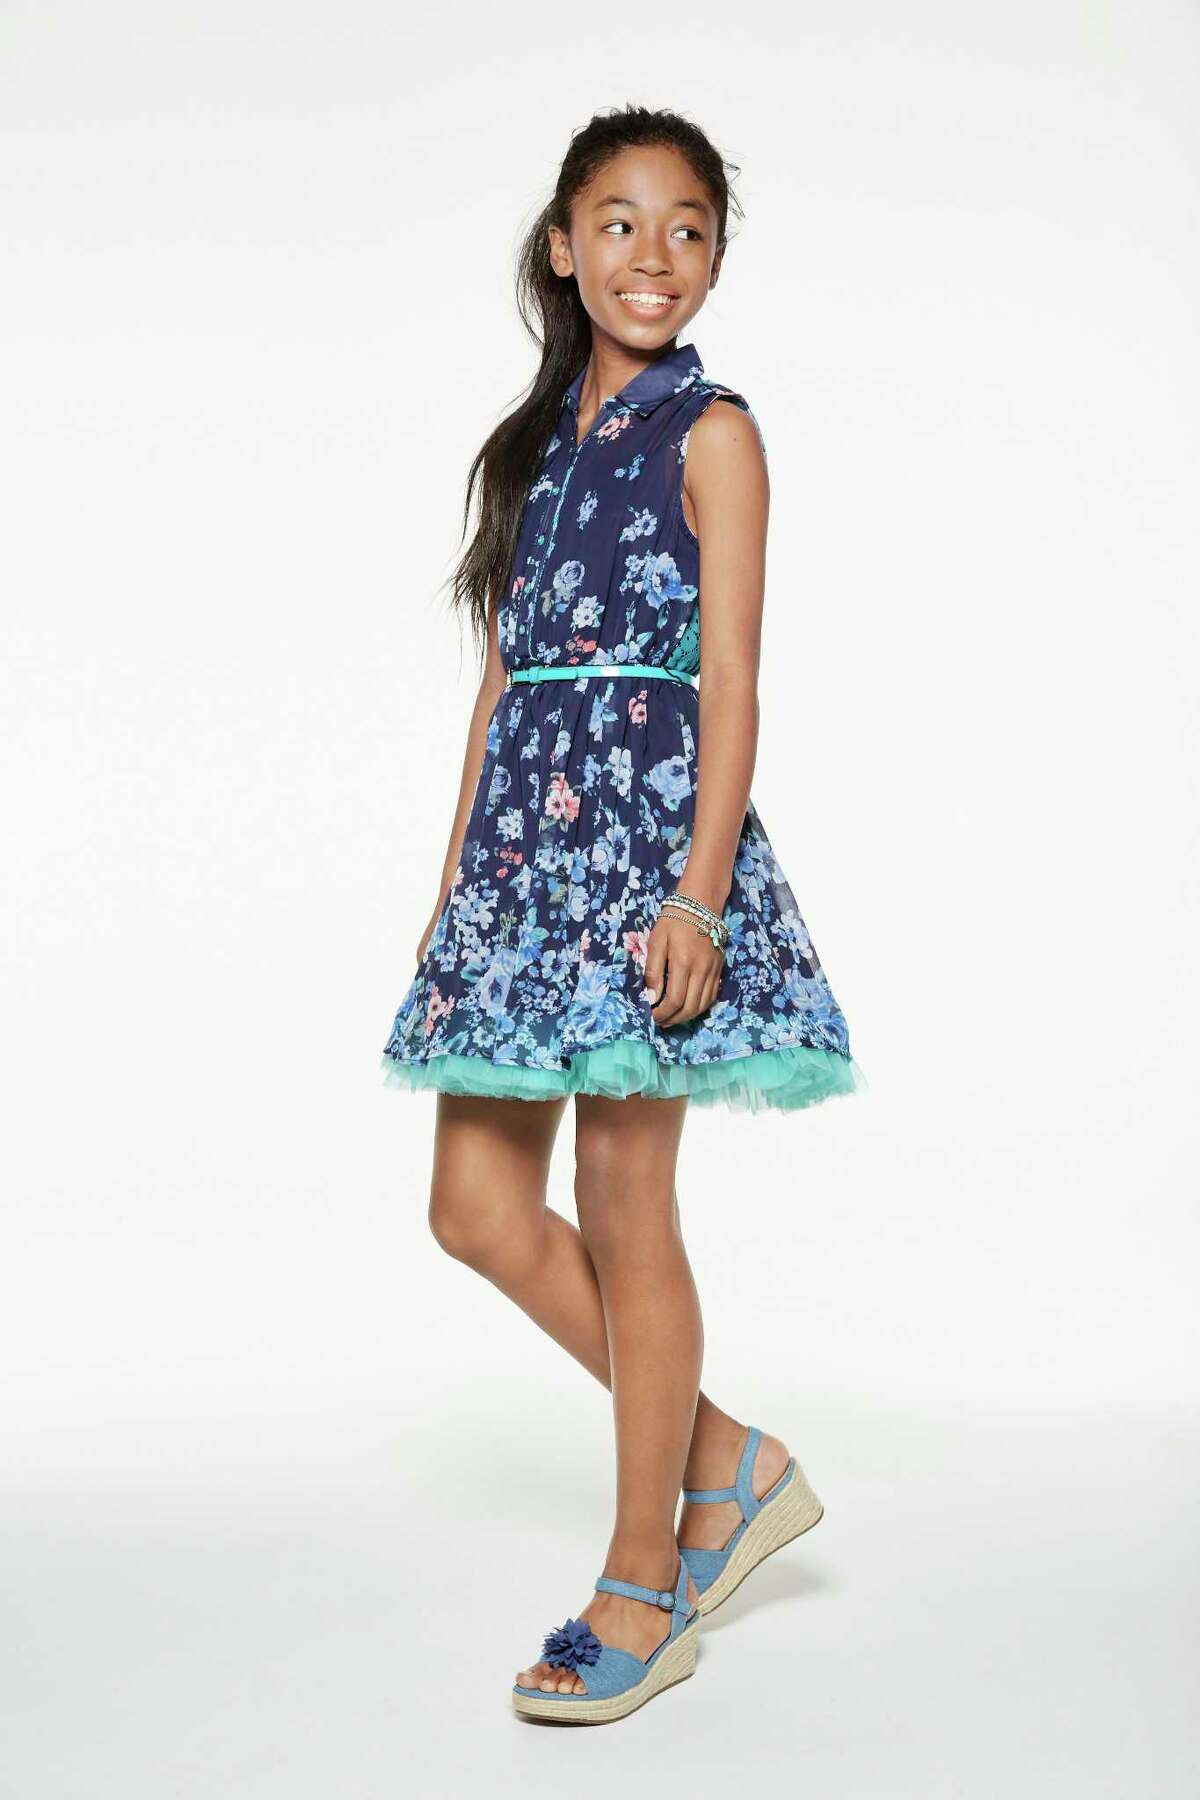 EASTER FASHION: Knit Works Dress Set $50, JCPenney